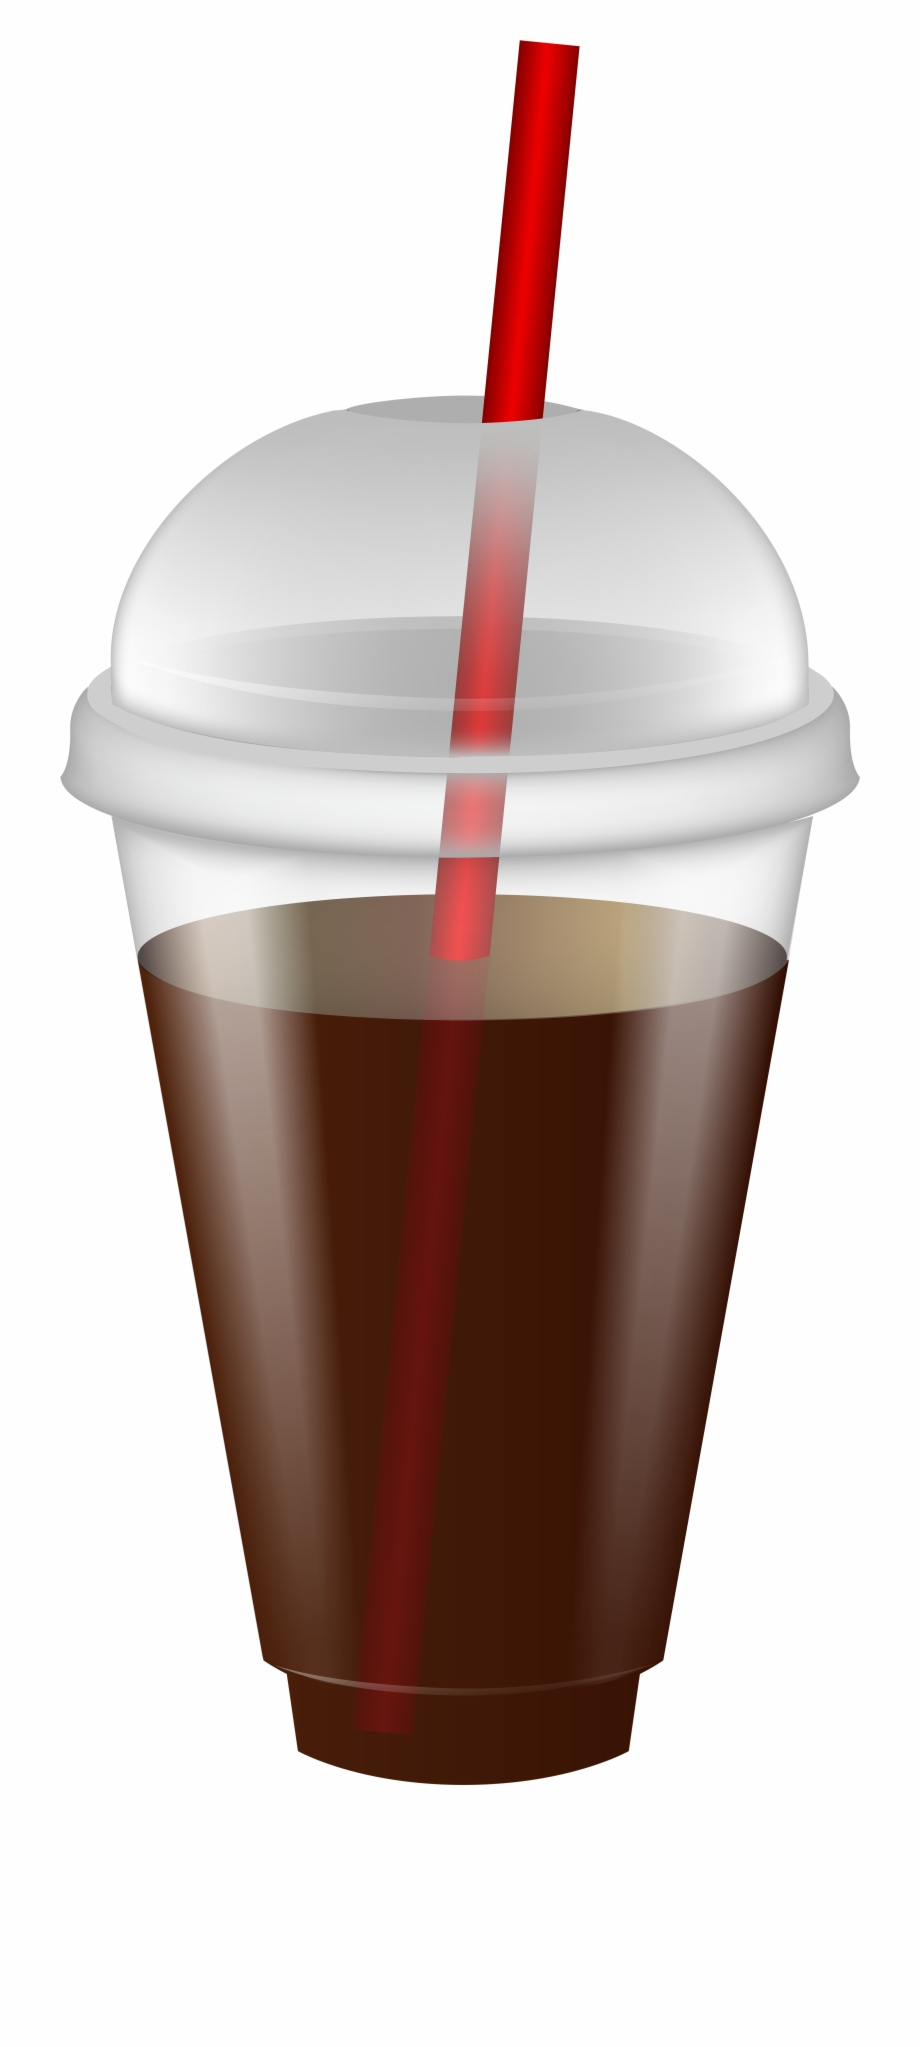 Png Royalty Free Drink In Plastic Cup With Clip Art.